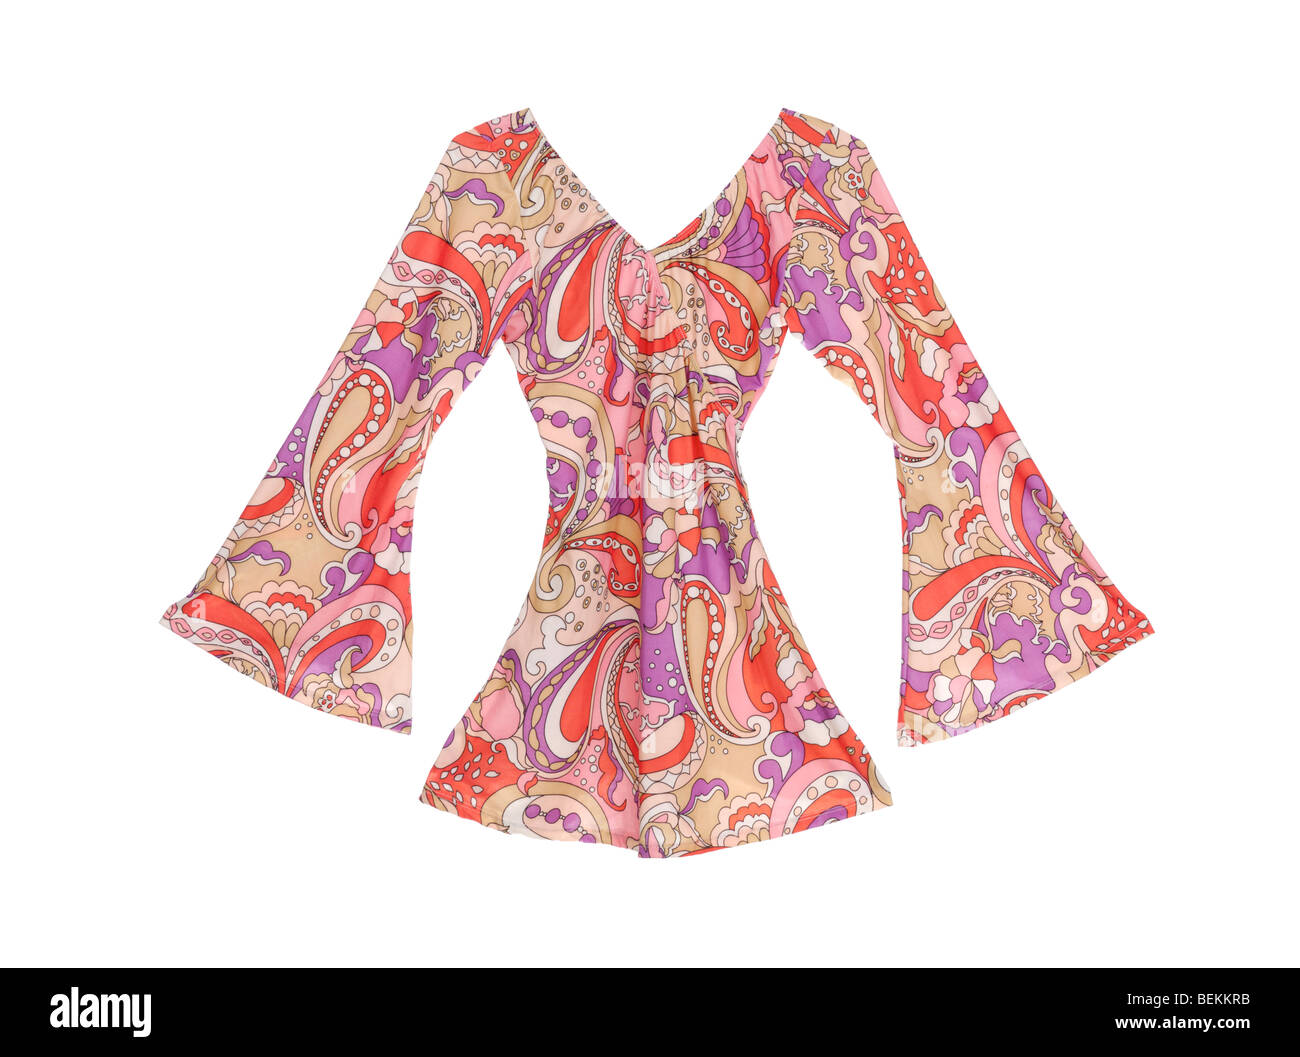 Fancy retro dress 60s style with bell bottom sleeves - Stock Image